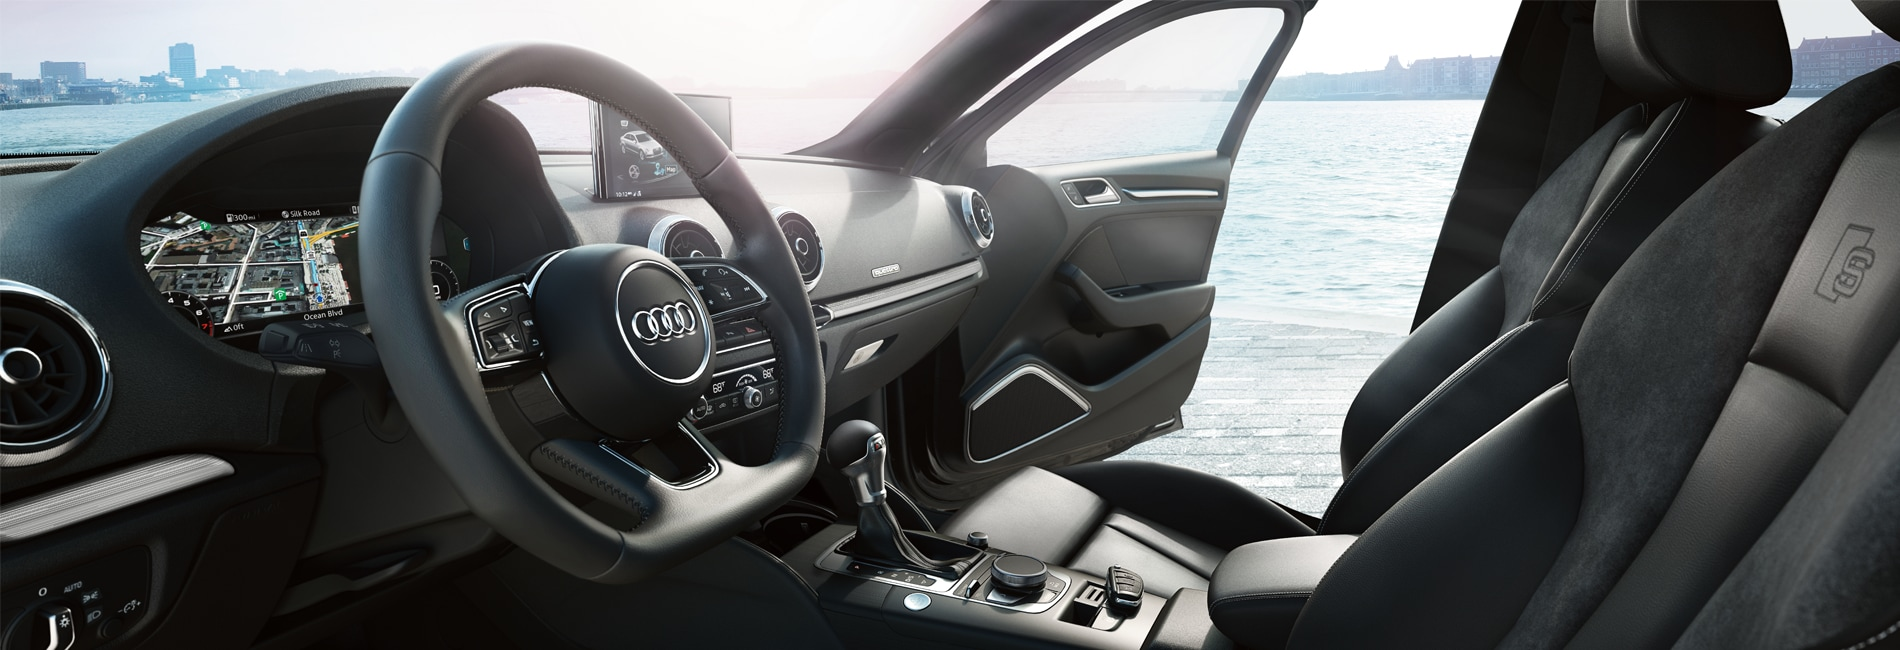 Audi A3 Interior Vehicle Features